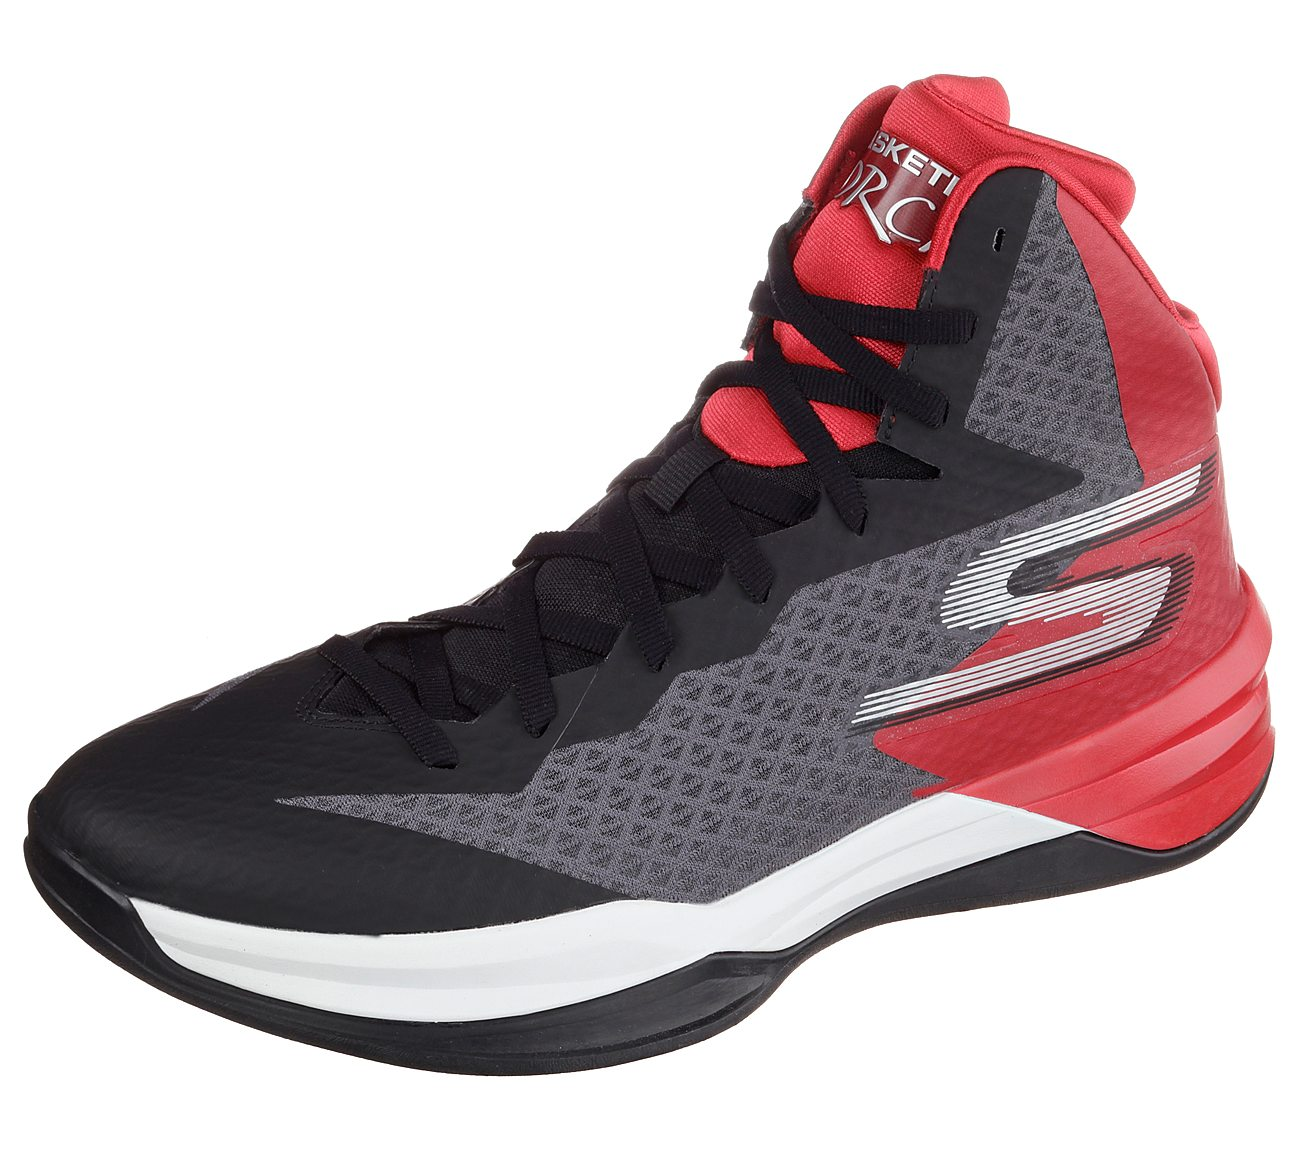 046a0a8ed5b6 Buy SKECHERS Skechers GOtorch Basketball Skechers Performance Shoes ...